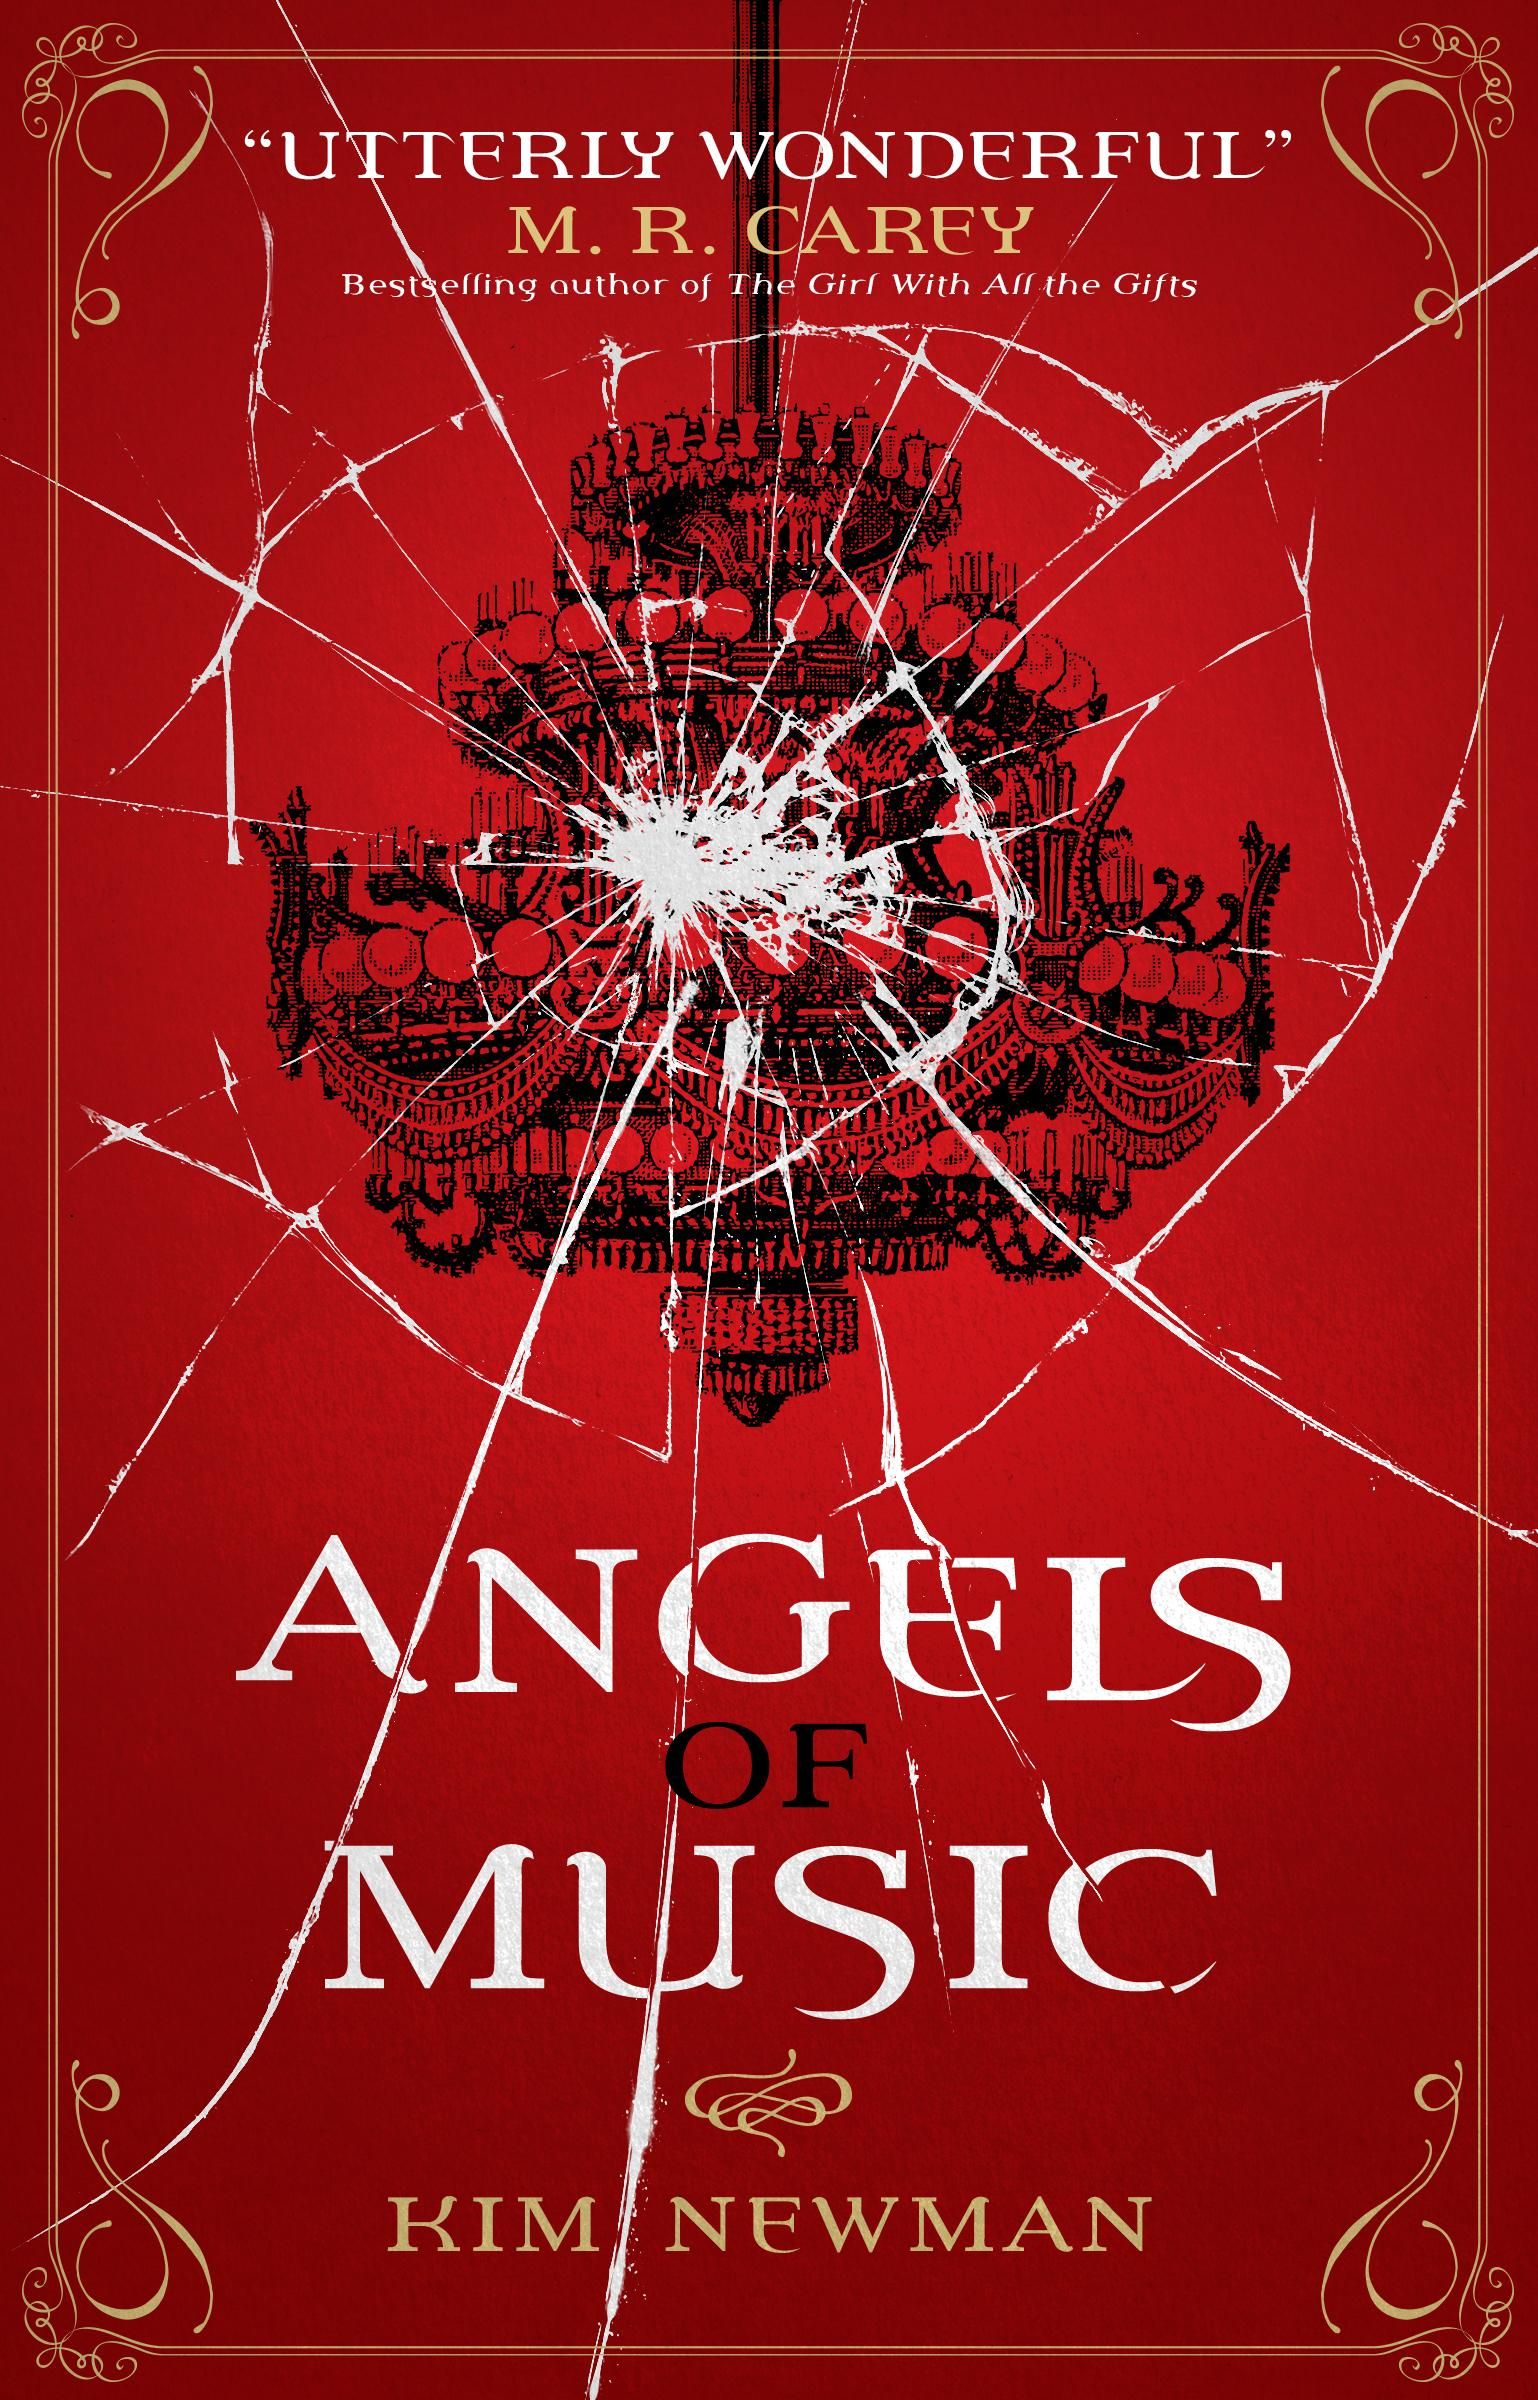 Angels of Music angels of paris an architectural tour through the history of paris